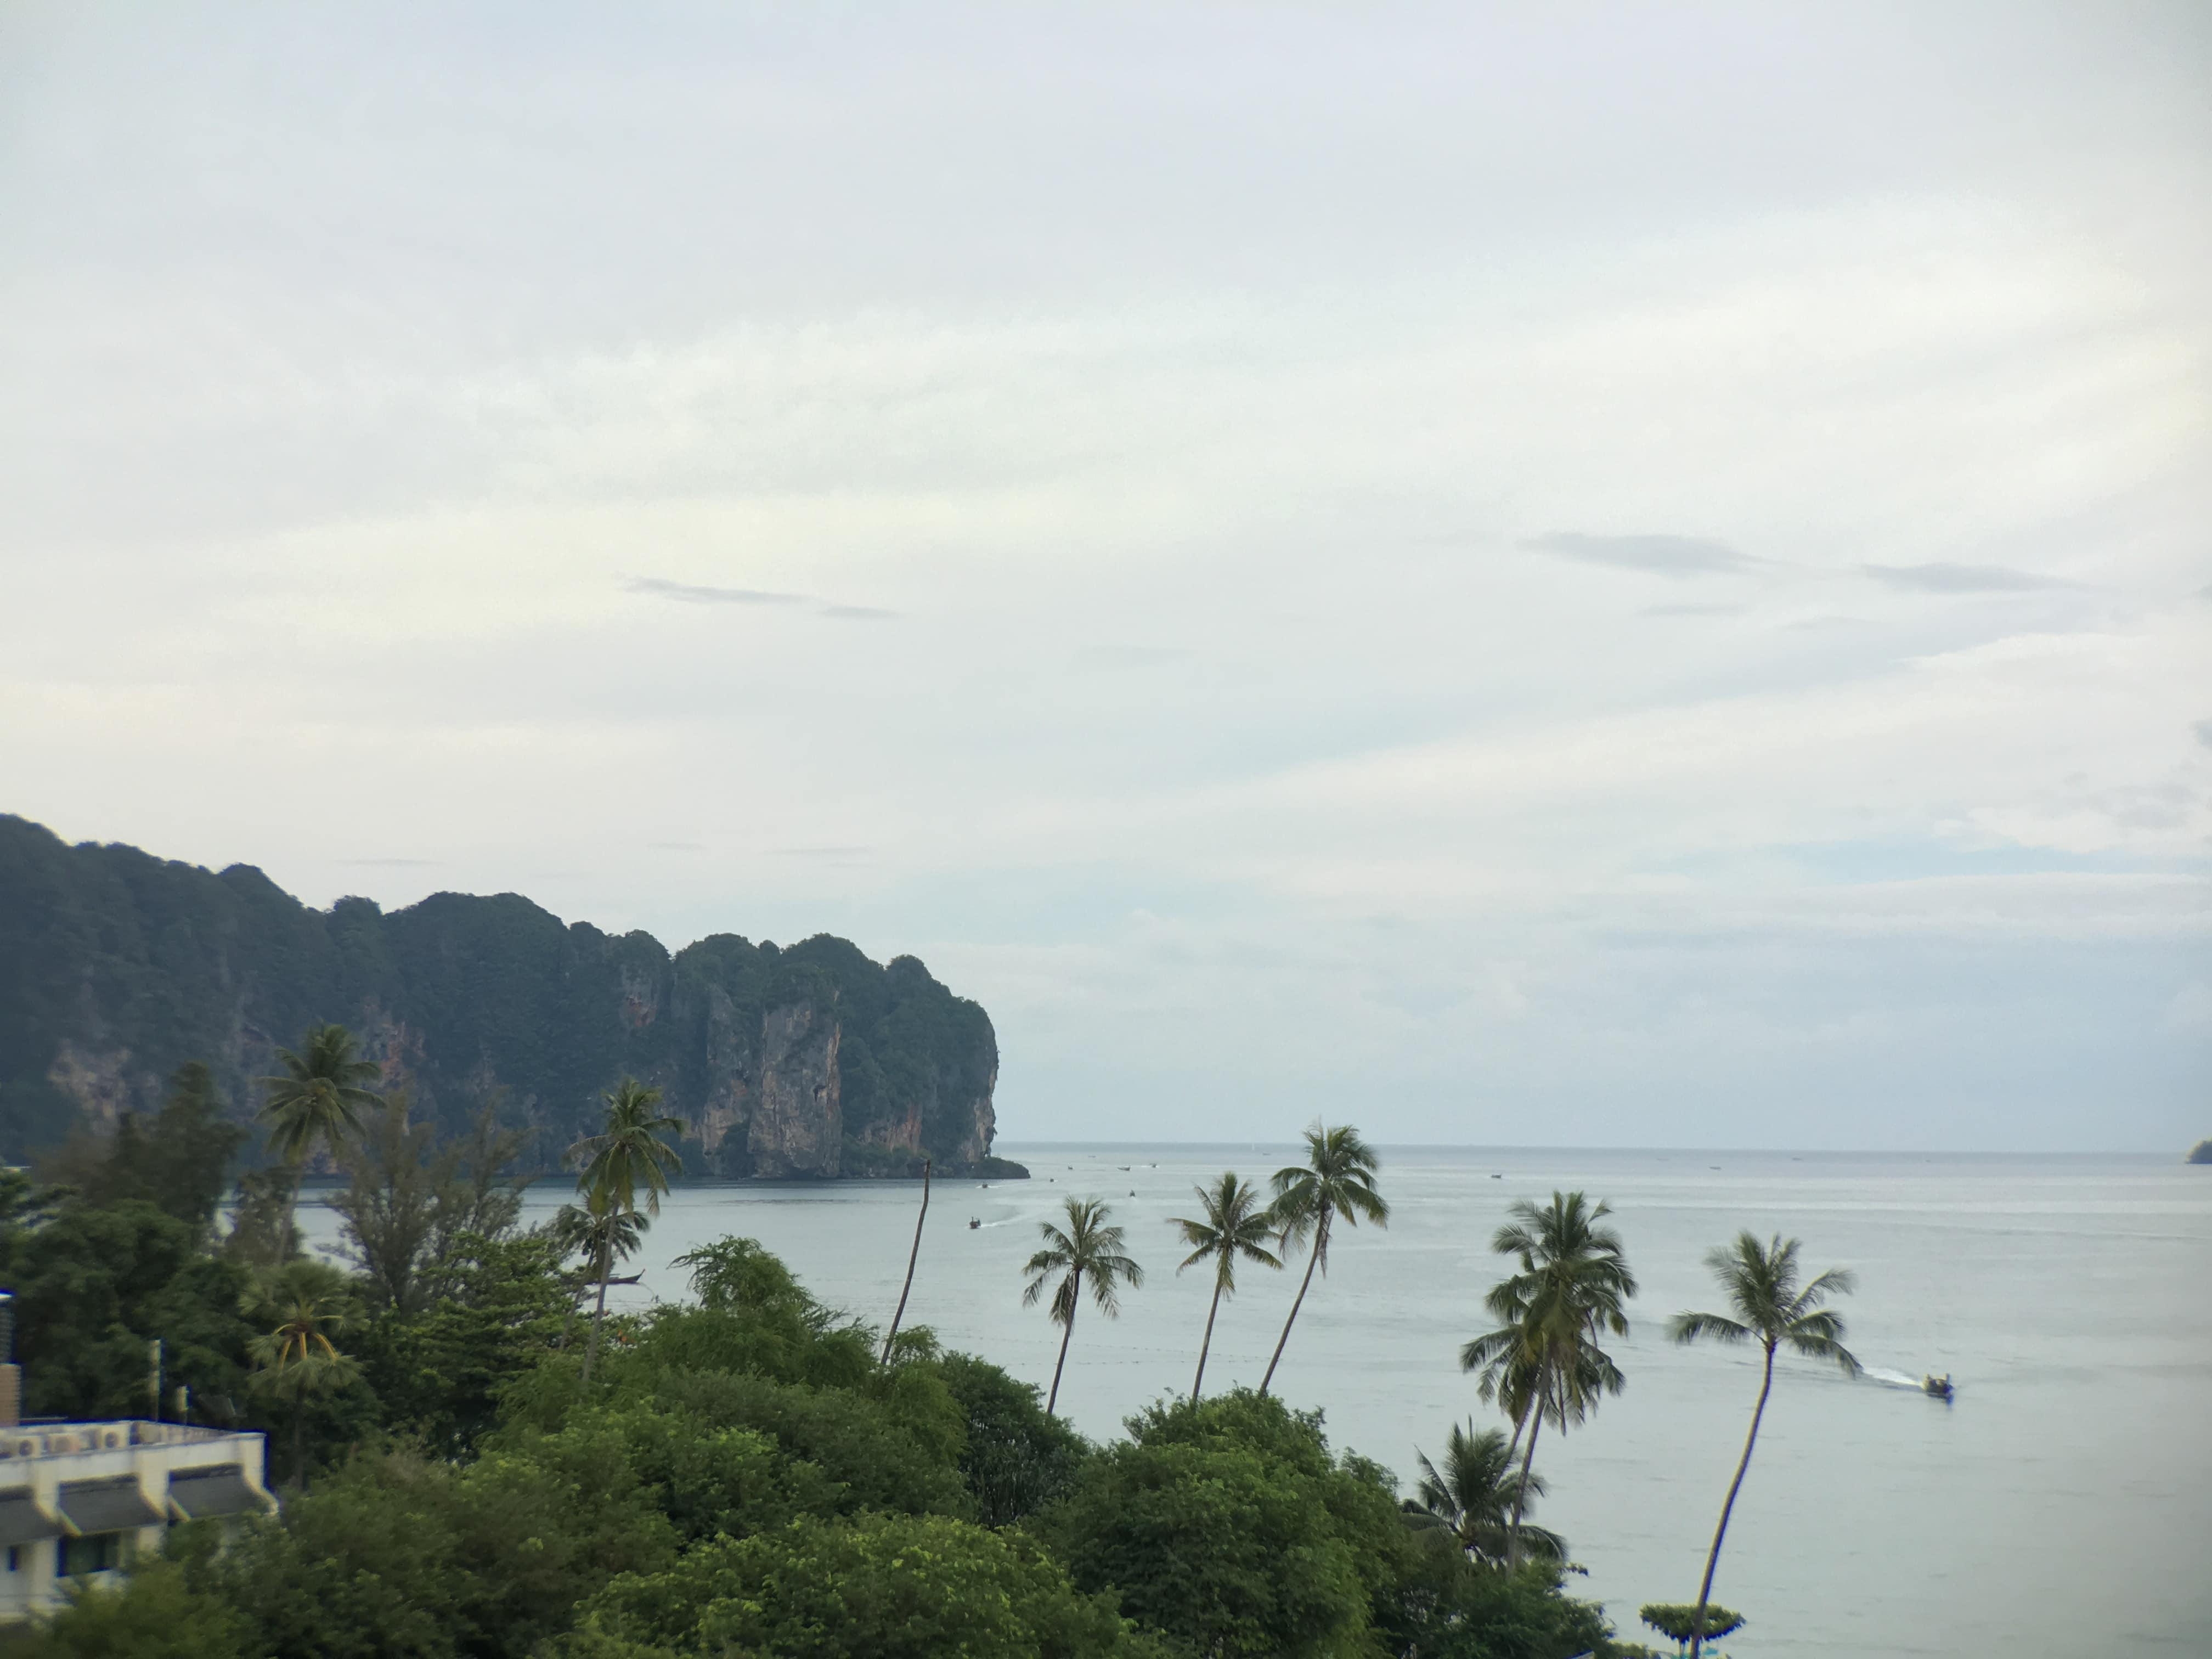 Views from the room in our luxury vacation in Thailand.